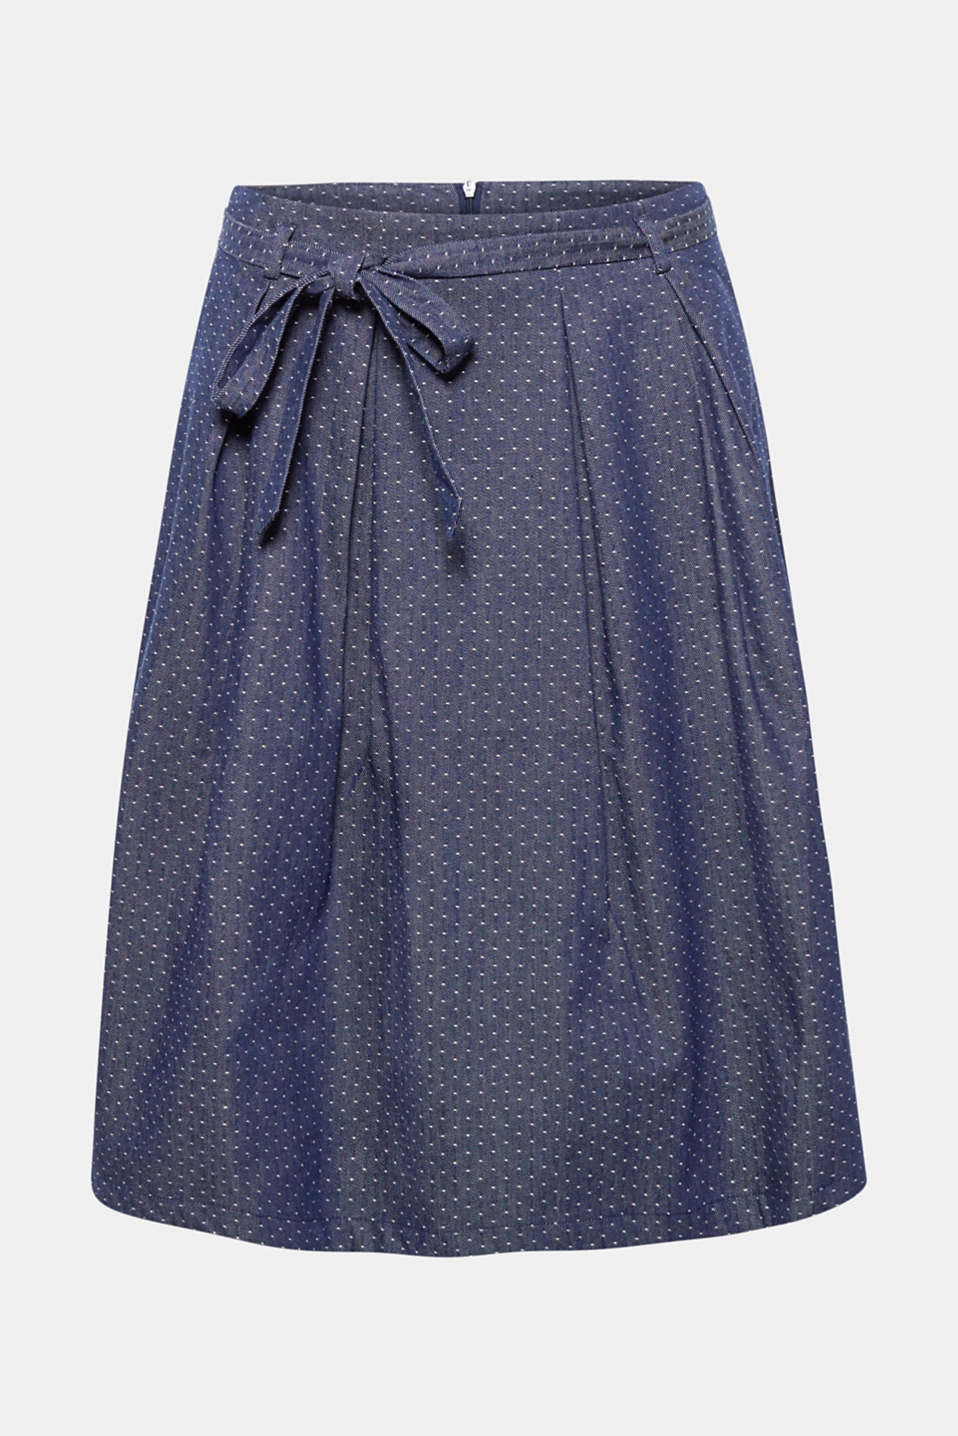 Skirts woven, DARK BLUE, detail image number 6